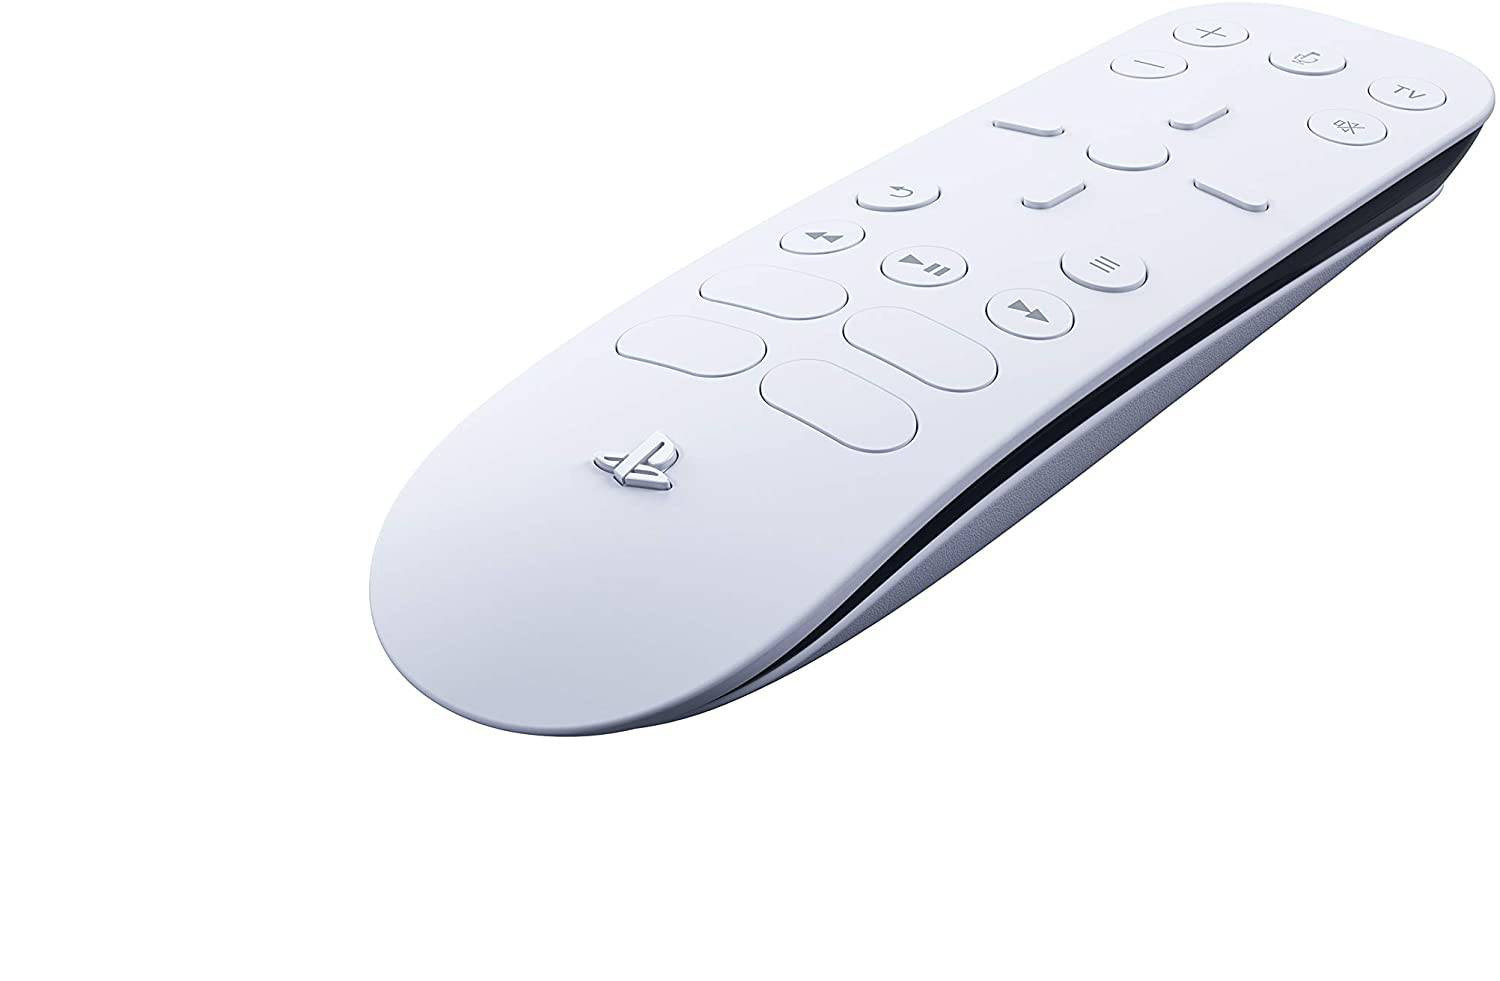 Sony PlayStation 5 Remote Controller